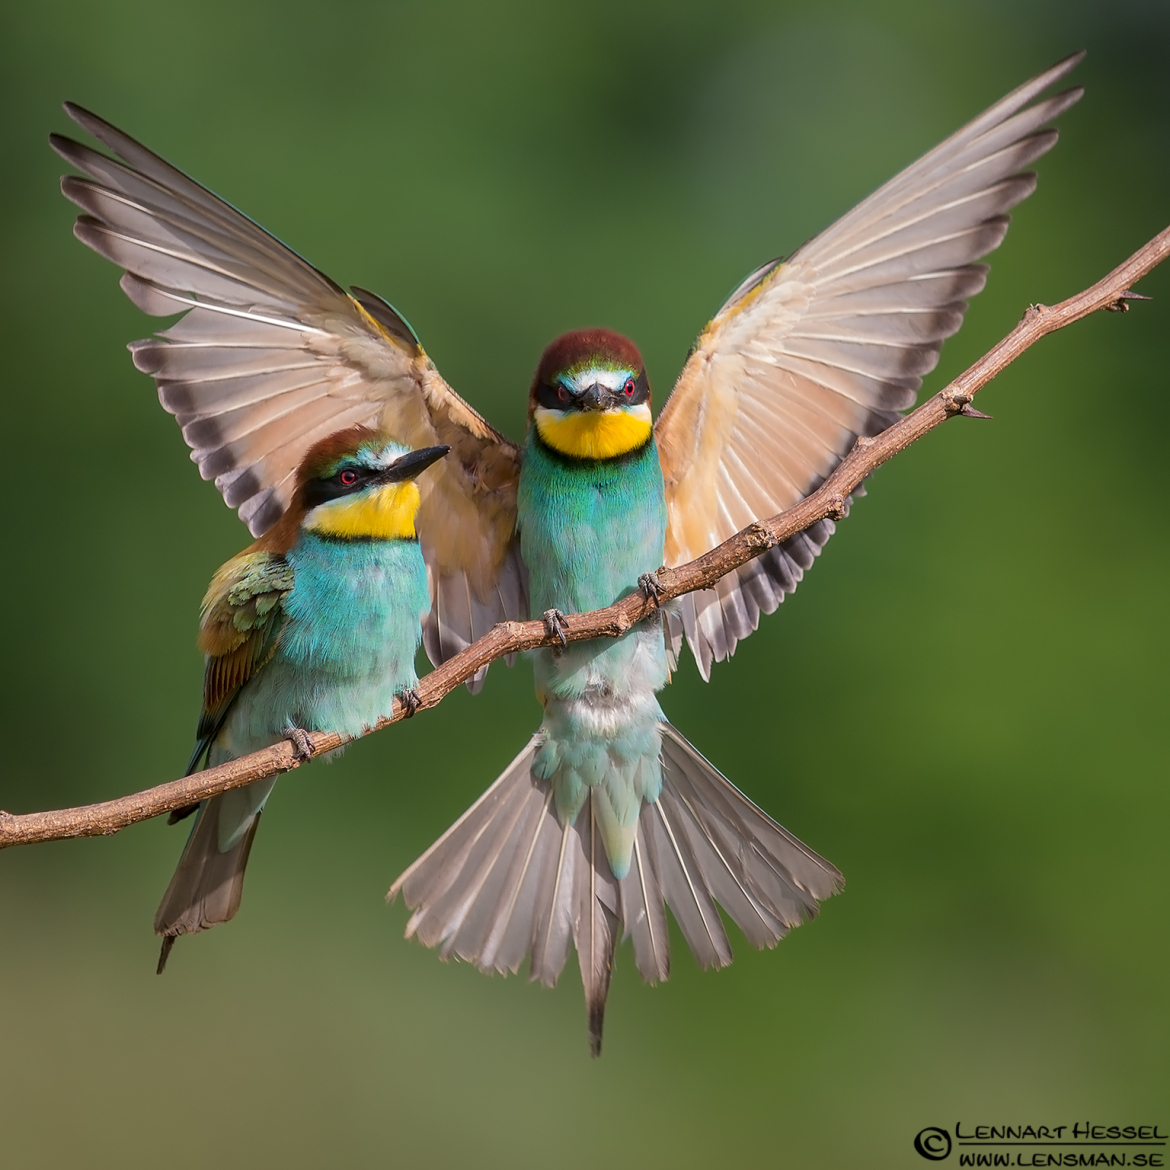 European Bee-eater - The Gaze World Open